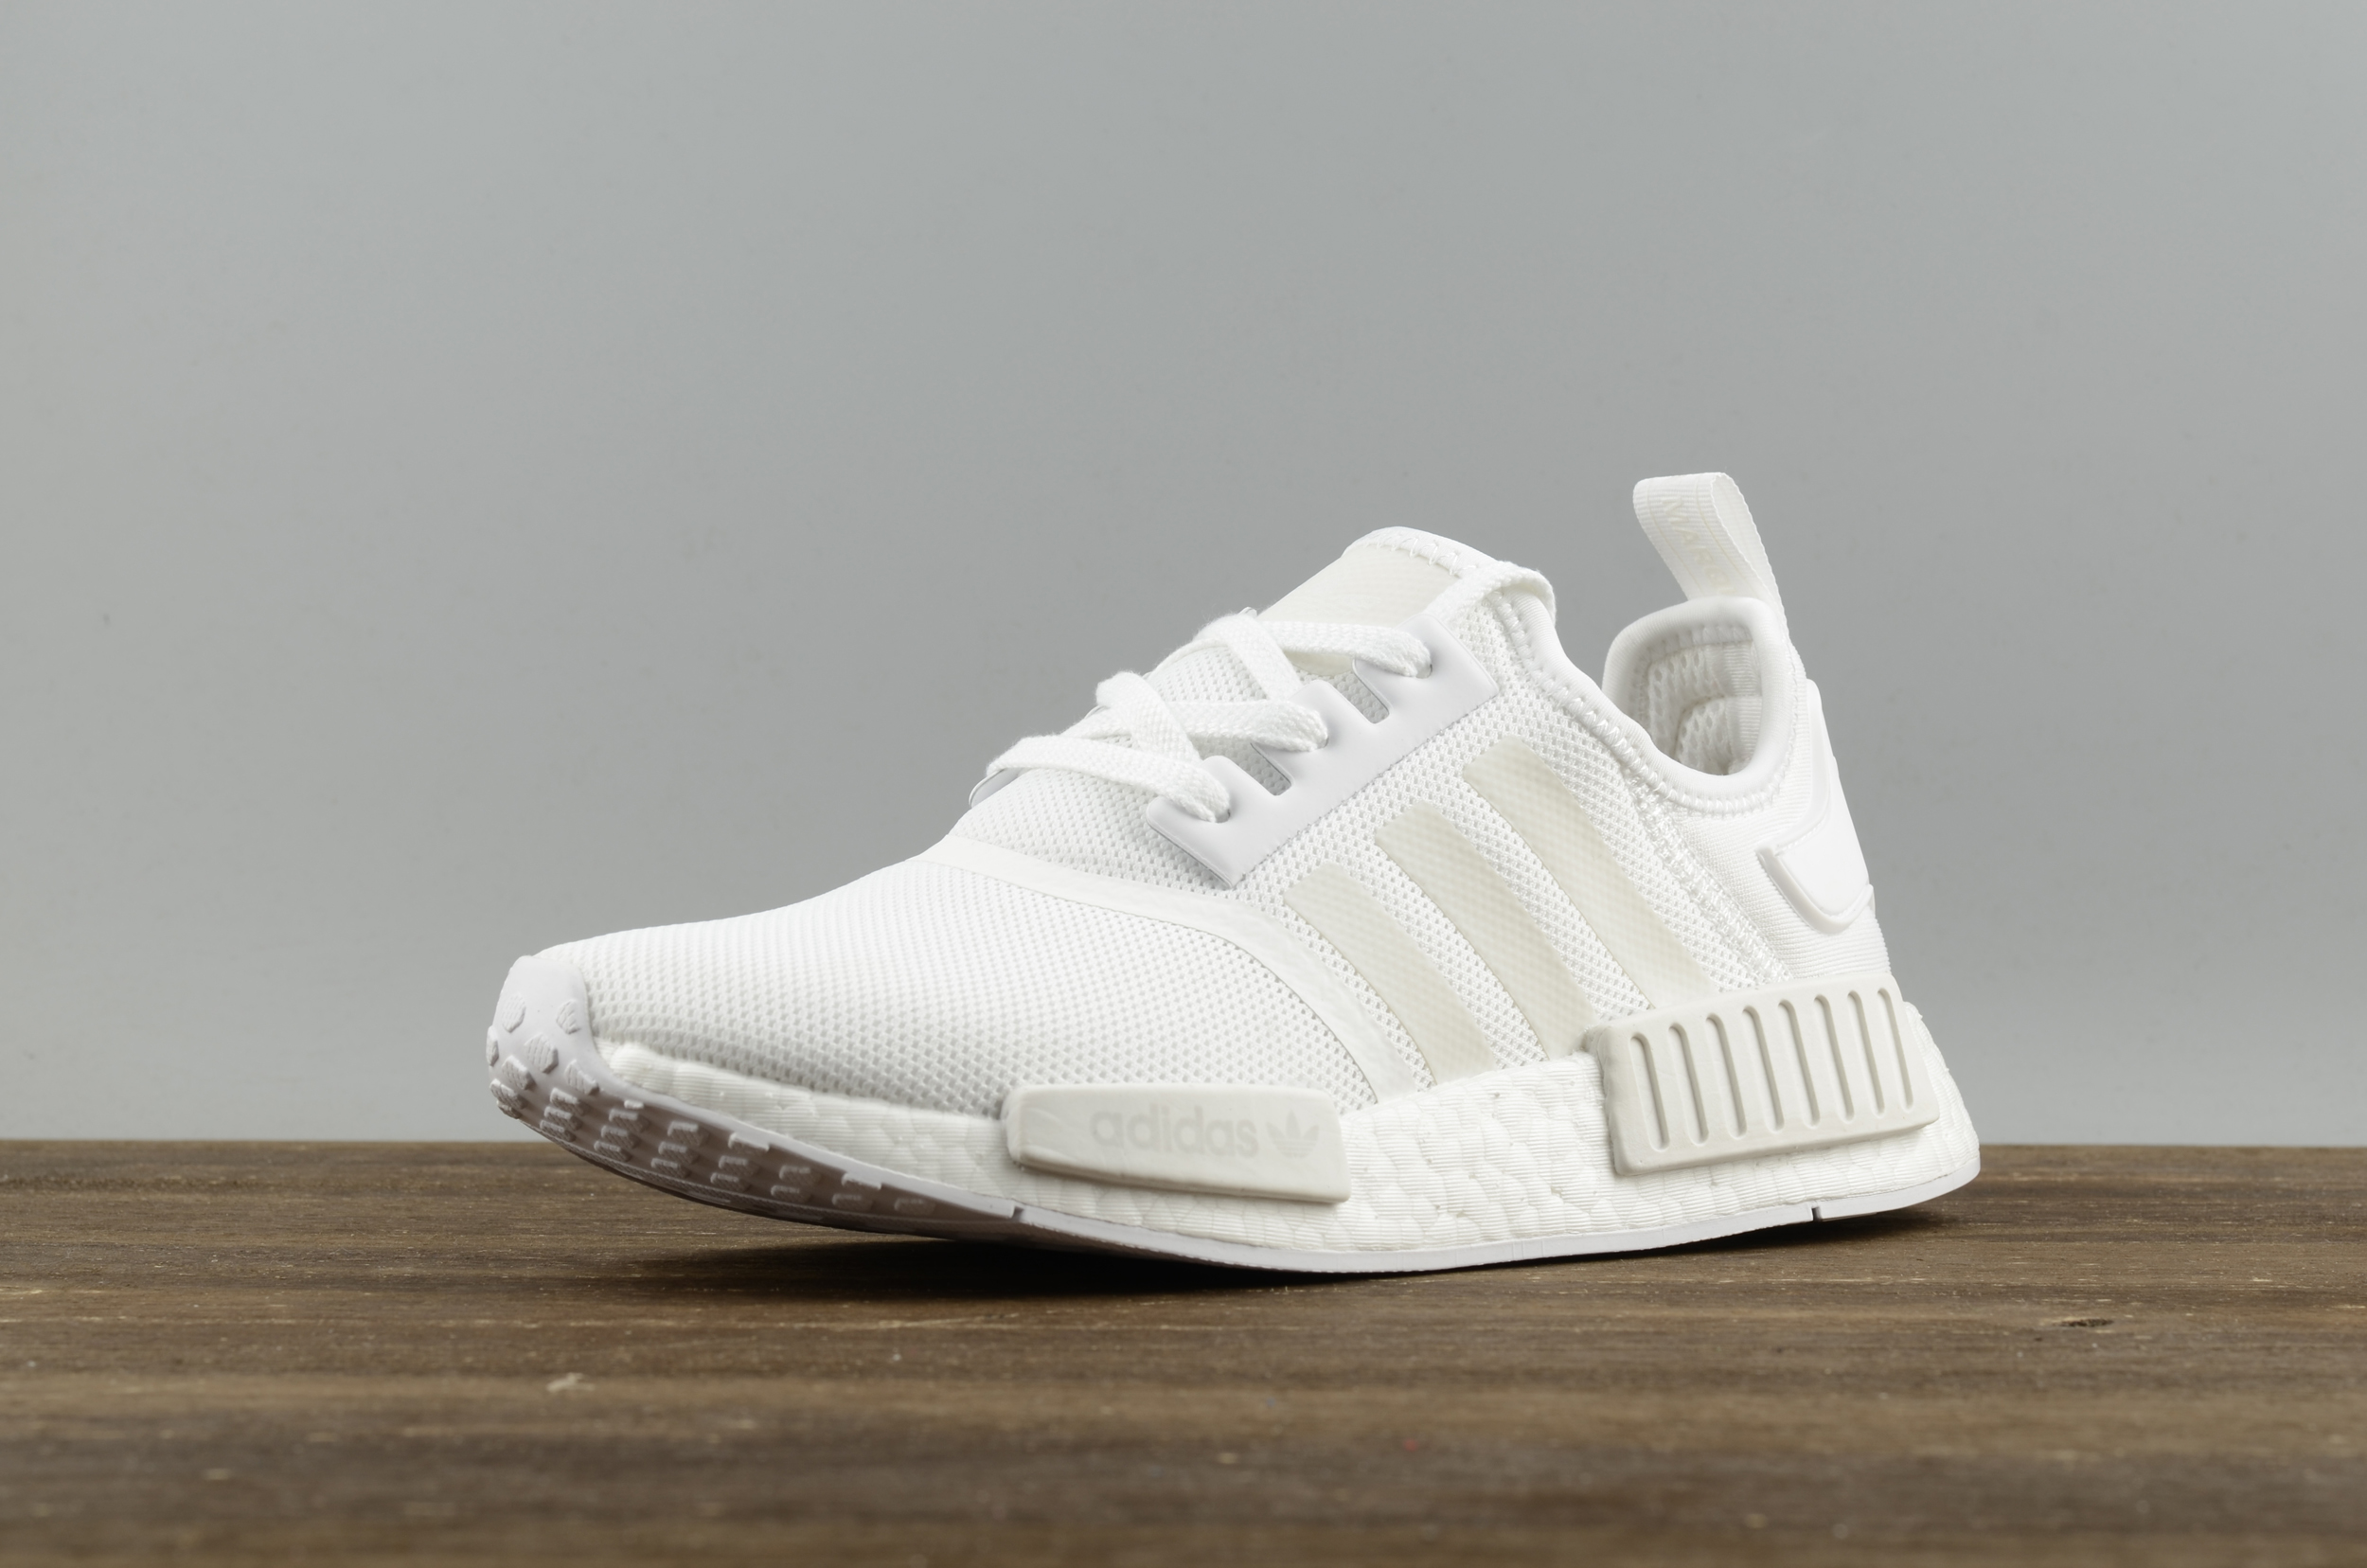 a52929a80d2fb Adidas NMD R1 Boost All white runner shoes · superstar · Online ...